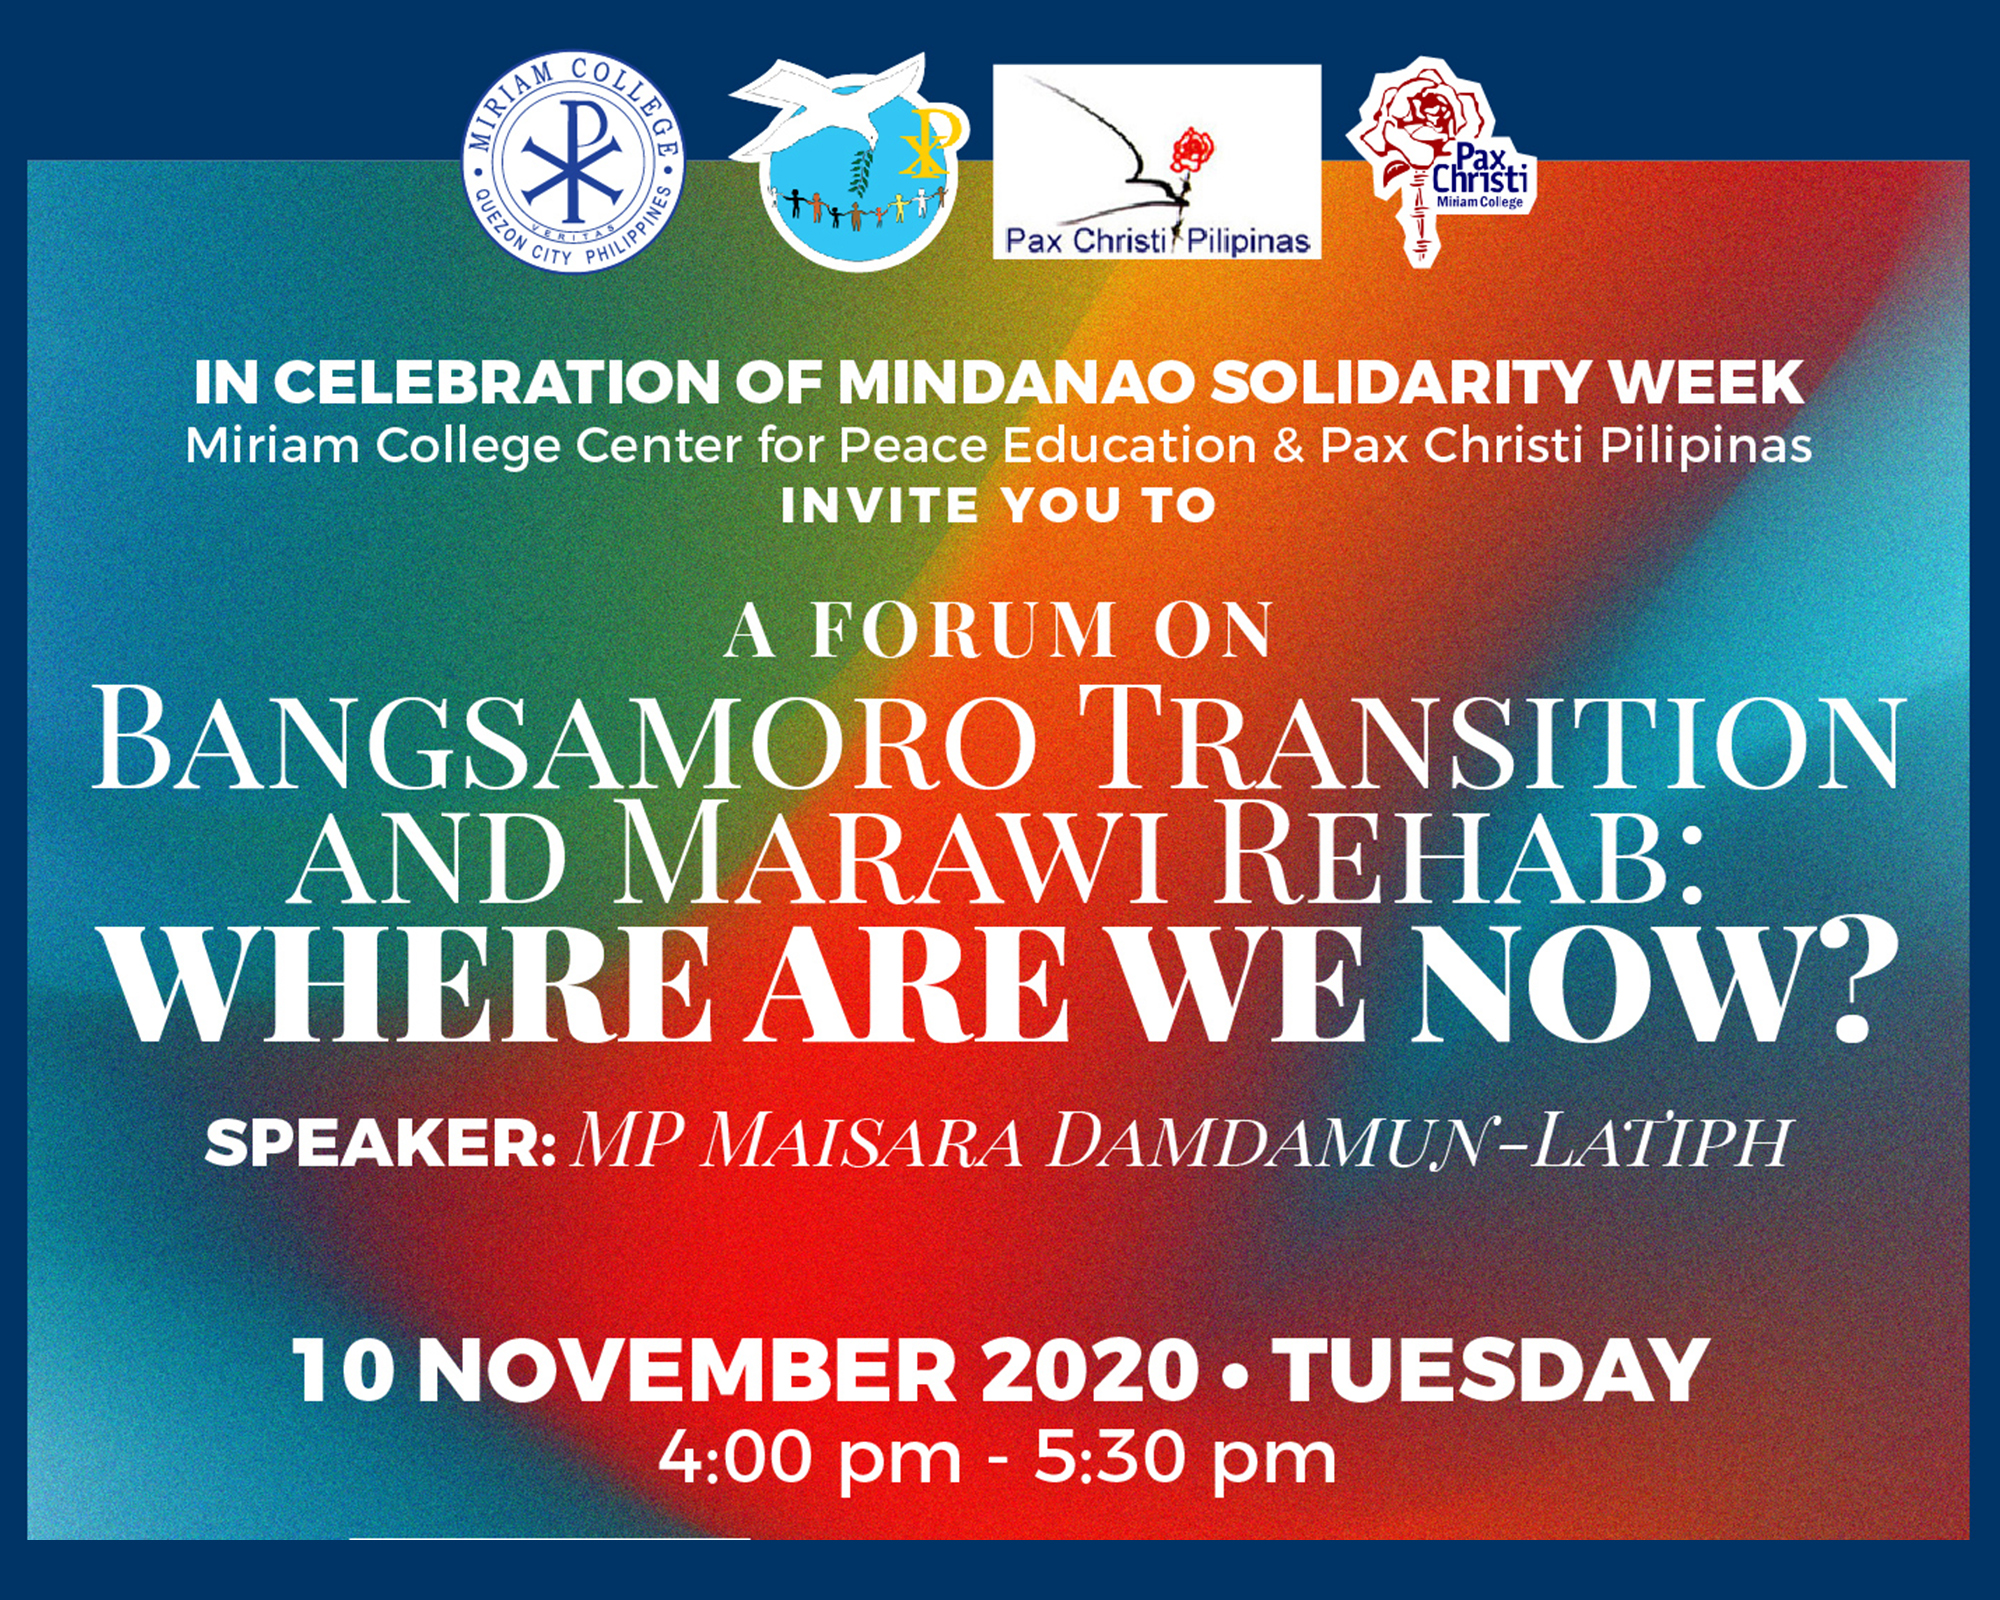 Mindanao Solidarity Week Forum – Bangsamoro Transition and Marawi Rehab: Where Are We Now?